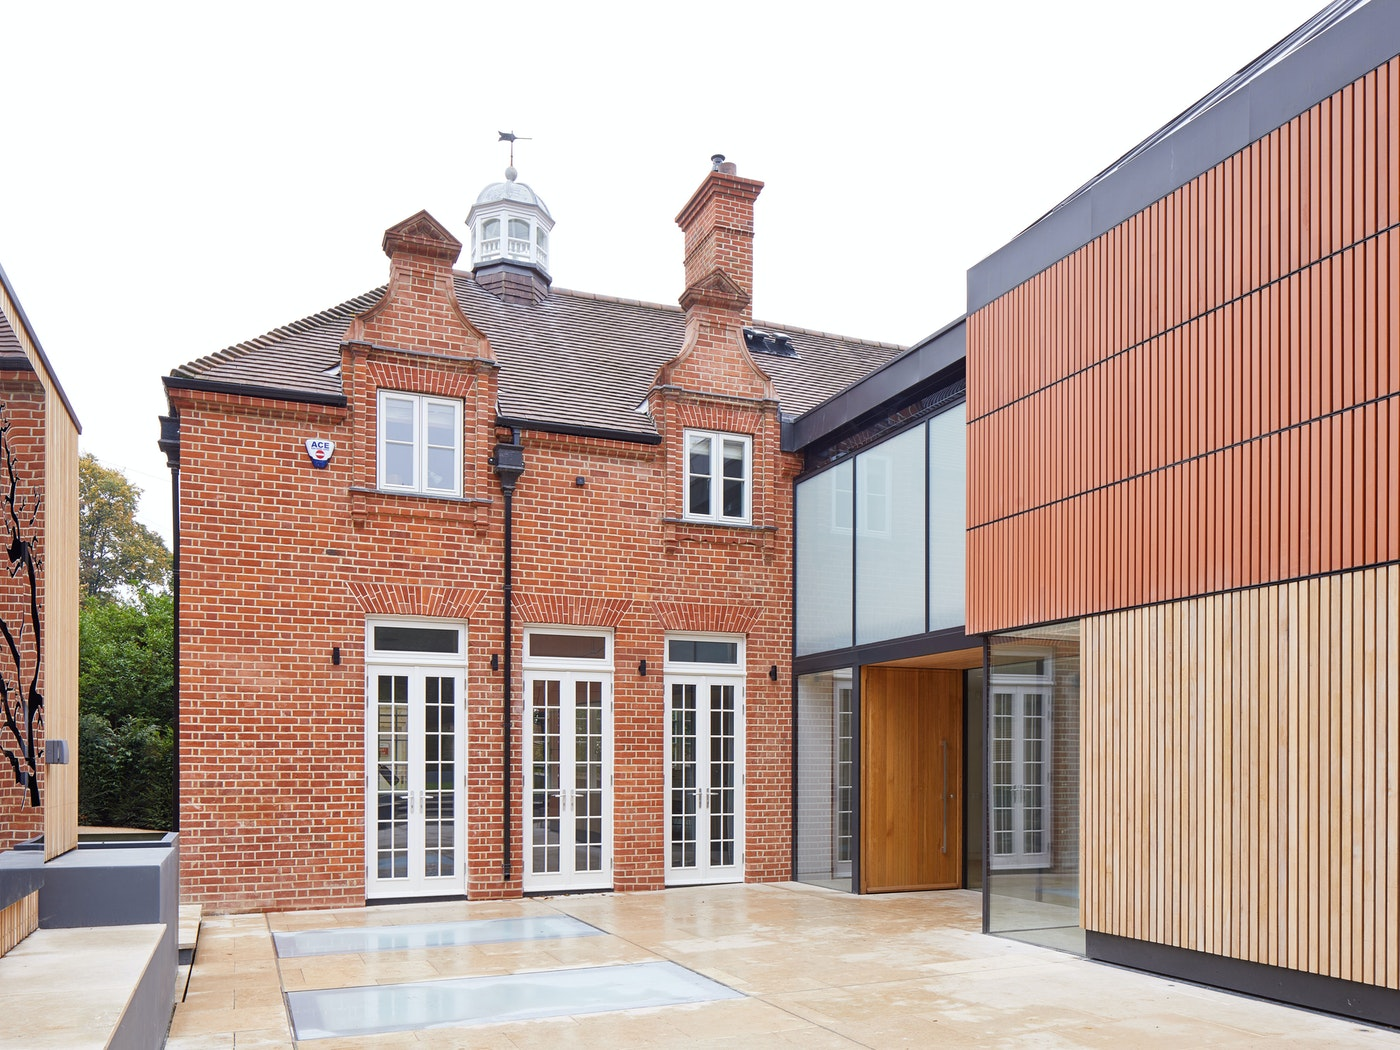 This traditional London house had a contemporary extension built